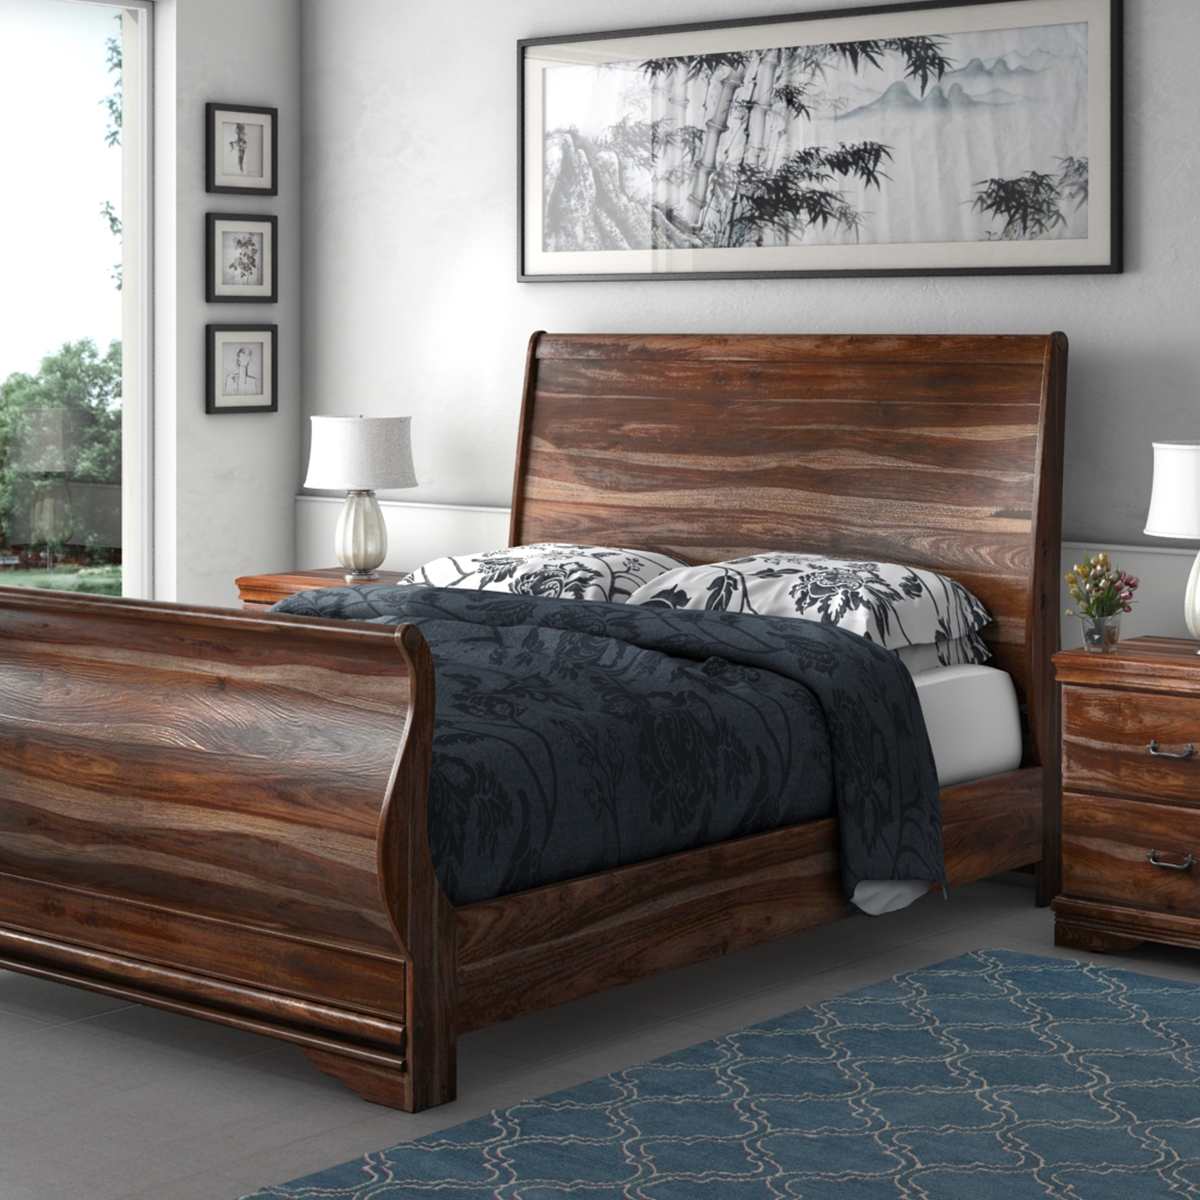 Solid Wood Bed Introducing New Solid Wood Bed Collection At Sierra Living